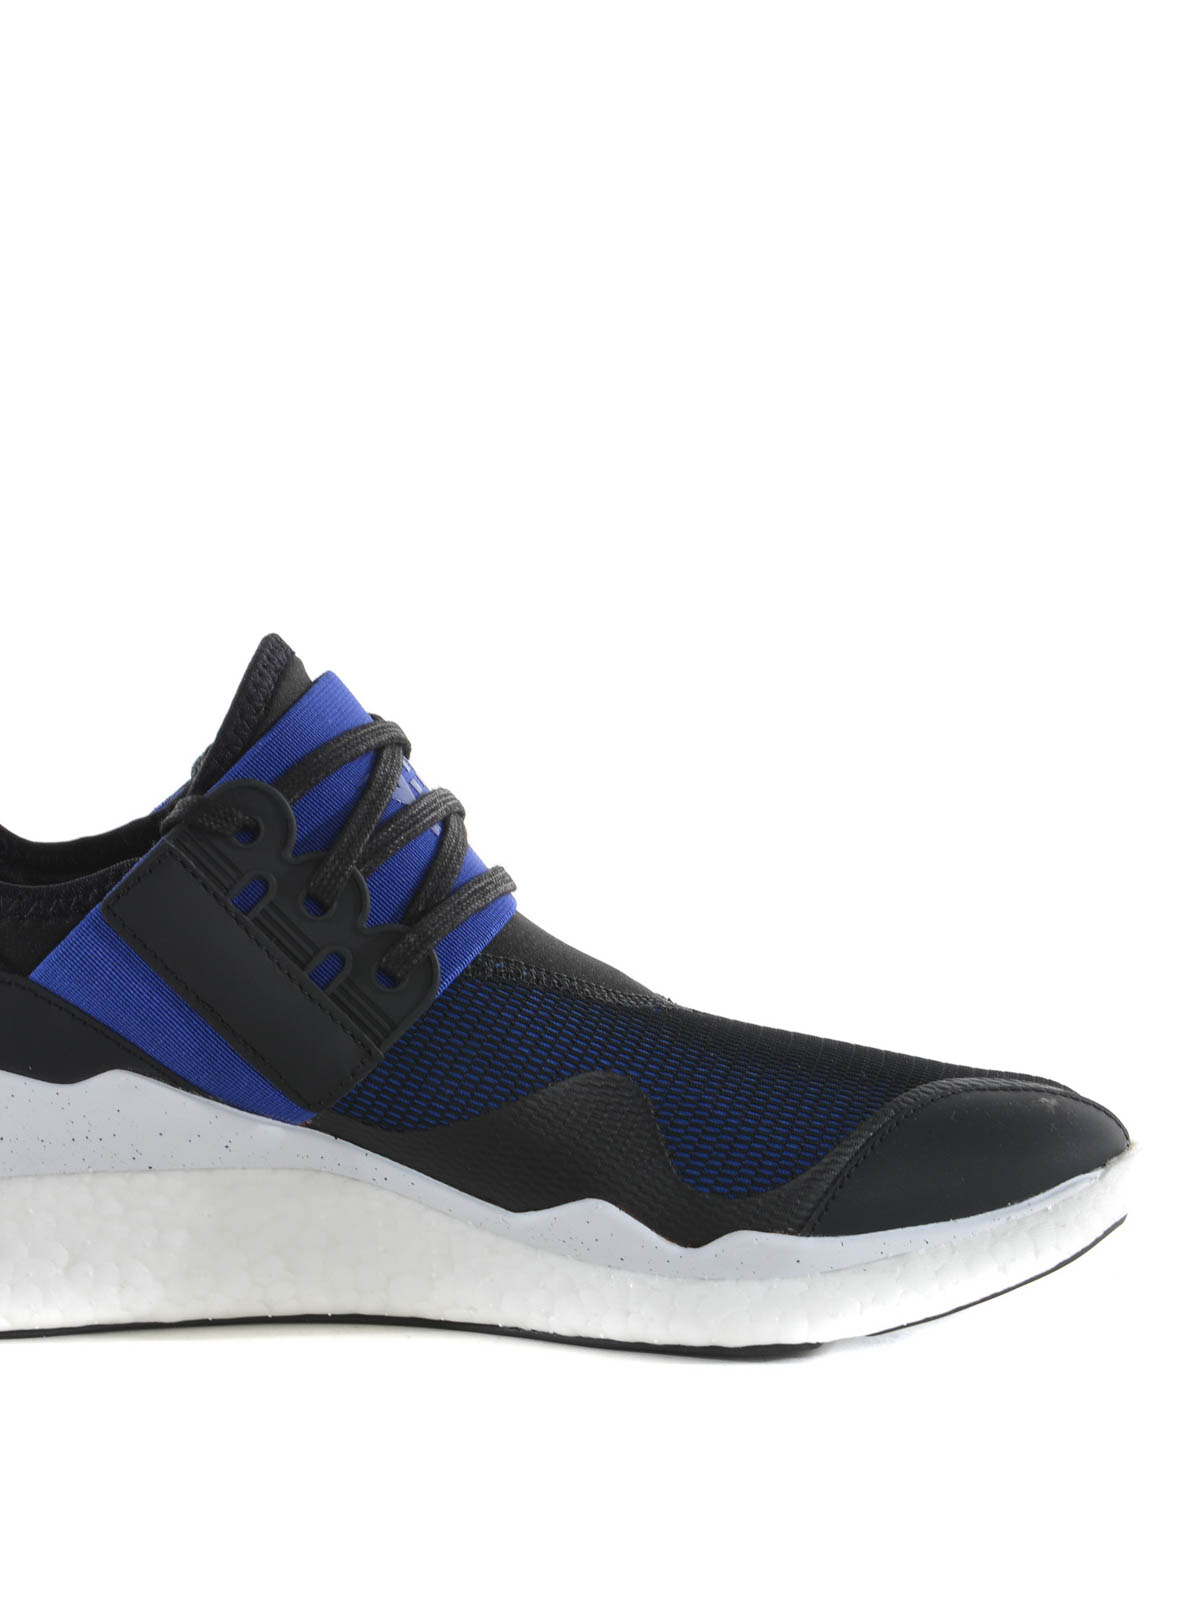 88293c7d1 Adidas Y-3 - Retro Boost sneakers - trainers - AQ5494 BLACK ELECTRIC ...